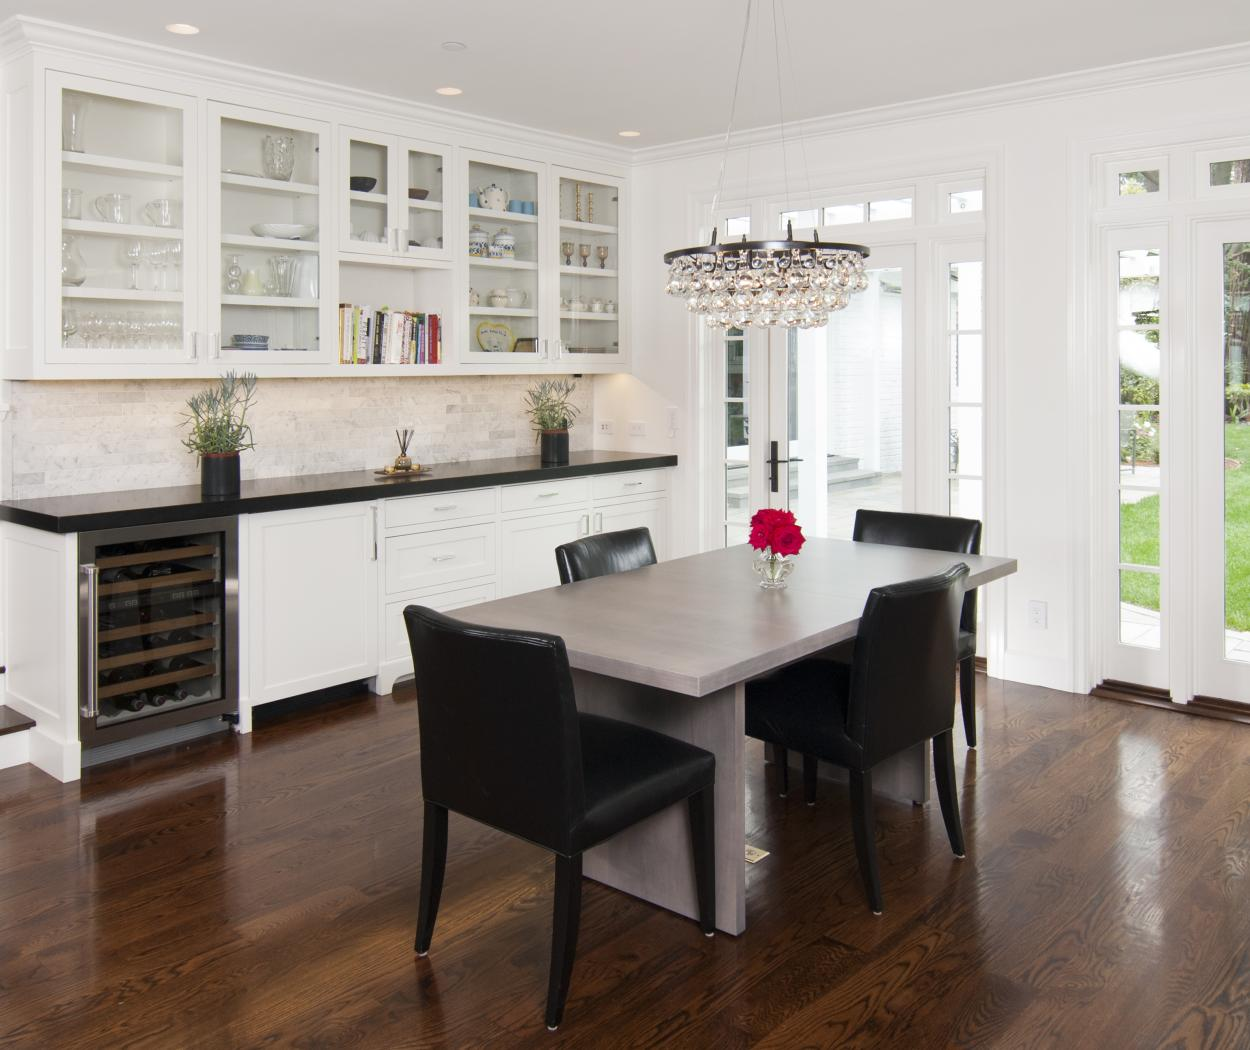 Transitional White, Shaker Style Wine Bar with a Black Countertop, Built-In Wine Cellar and Beautiful Glass Doors